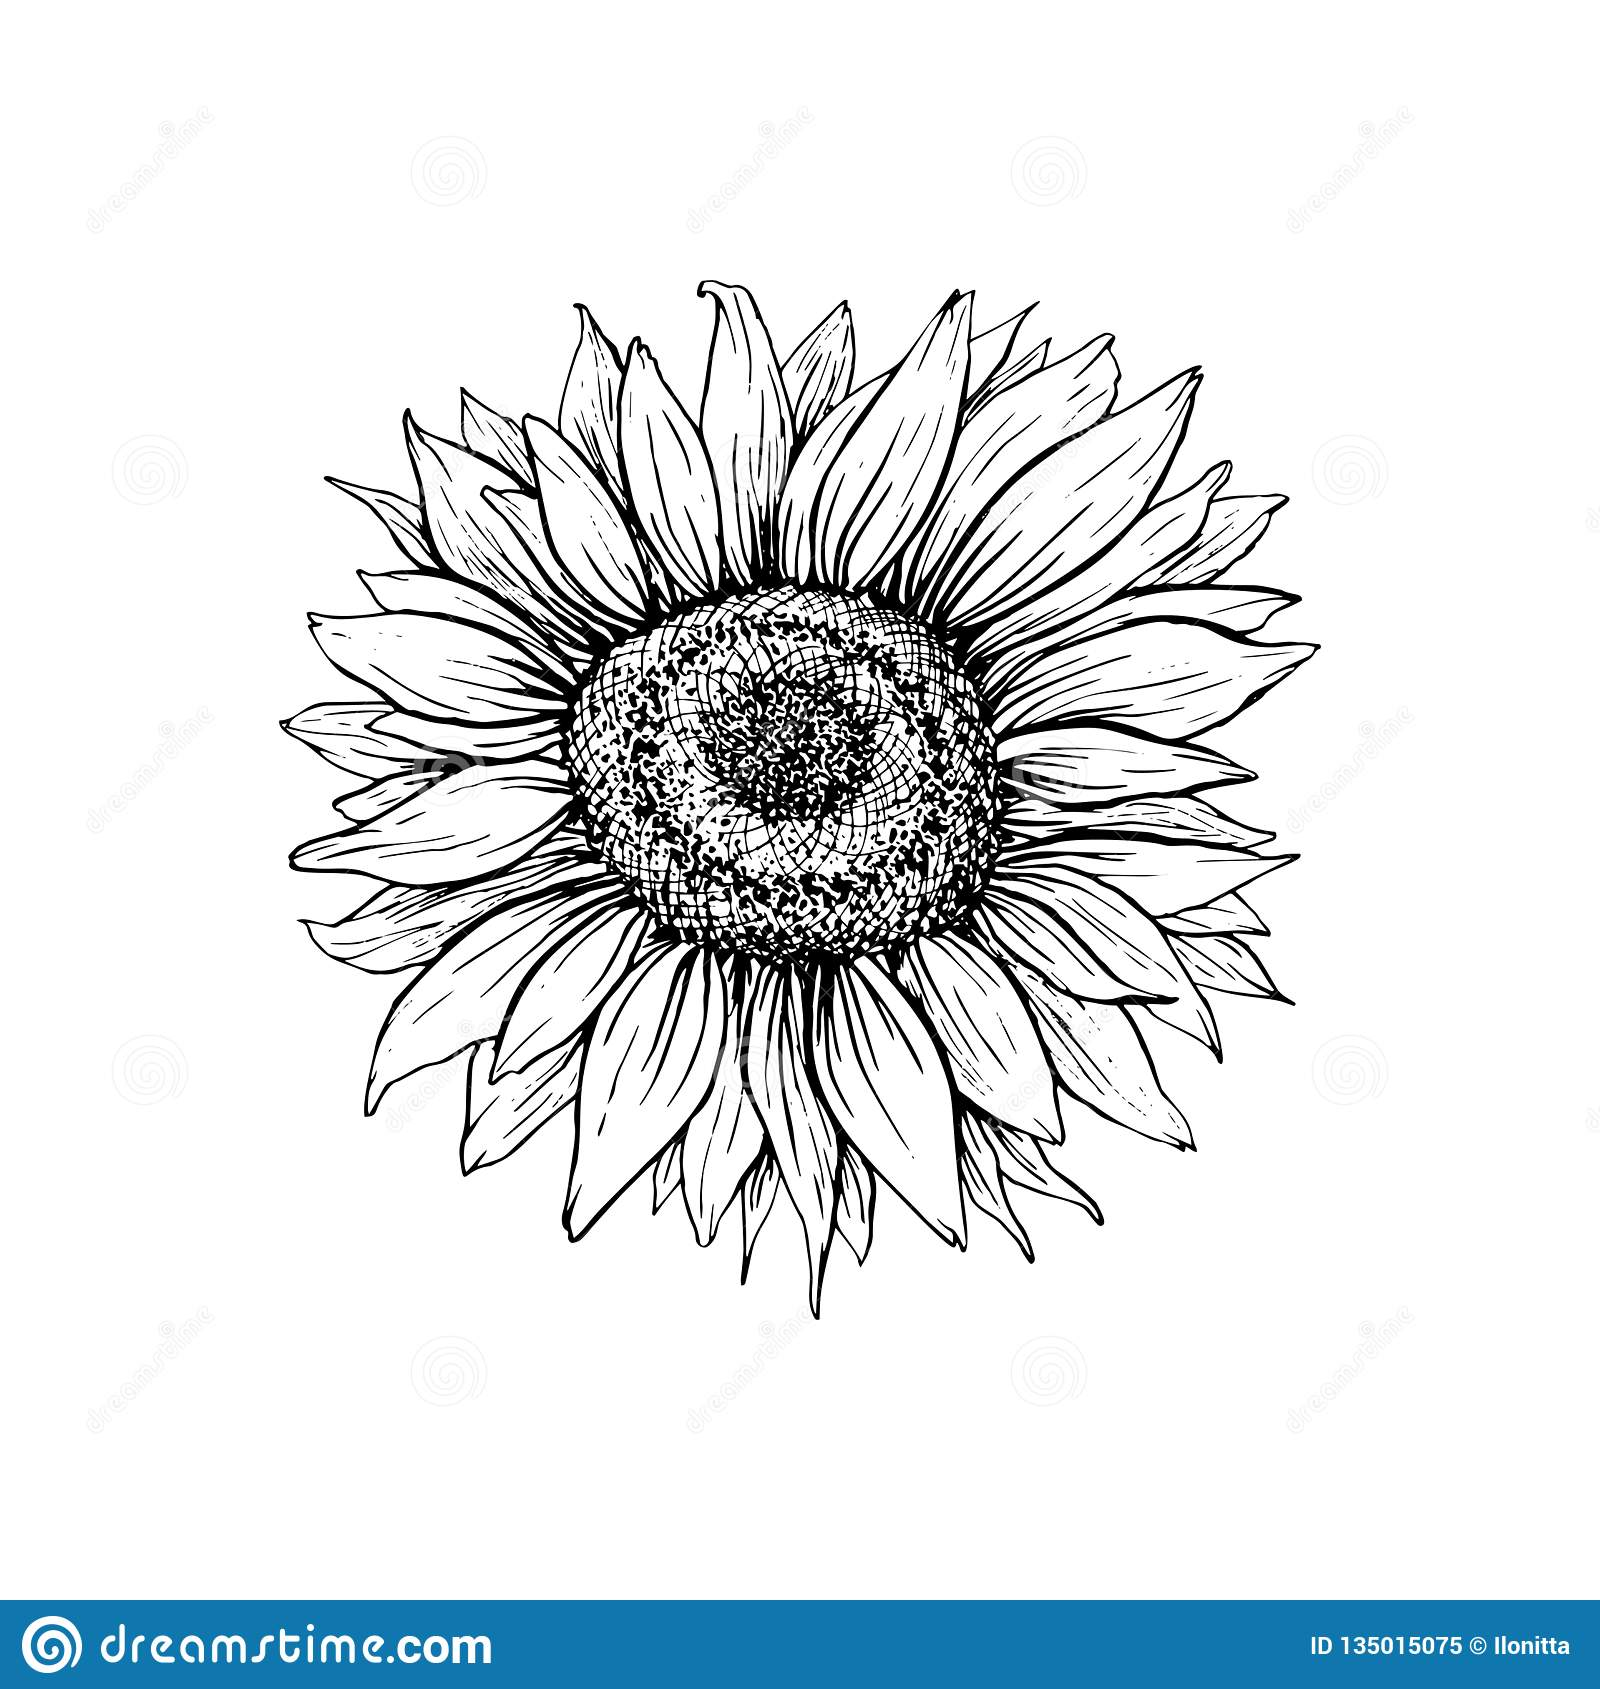 Sunflower hand drawn ink pen illustration stock vector